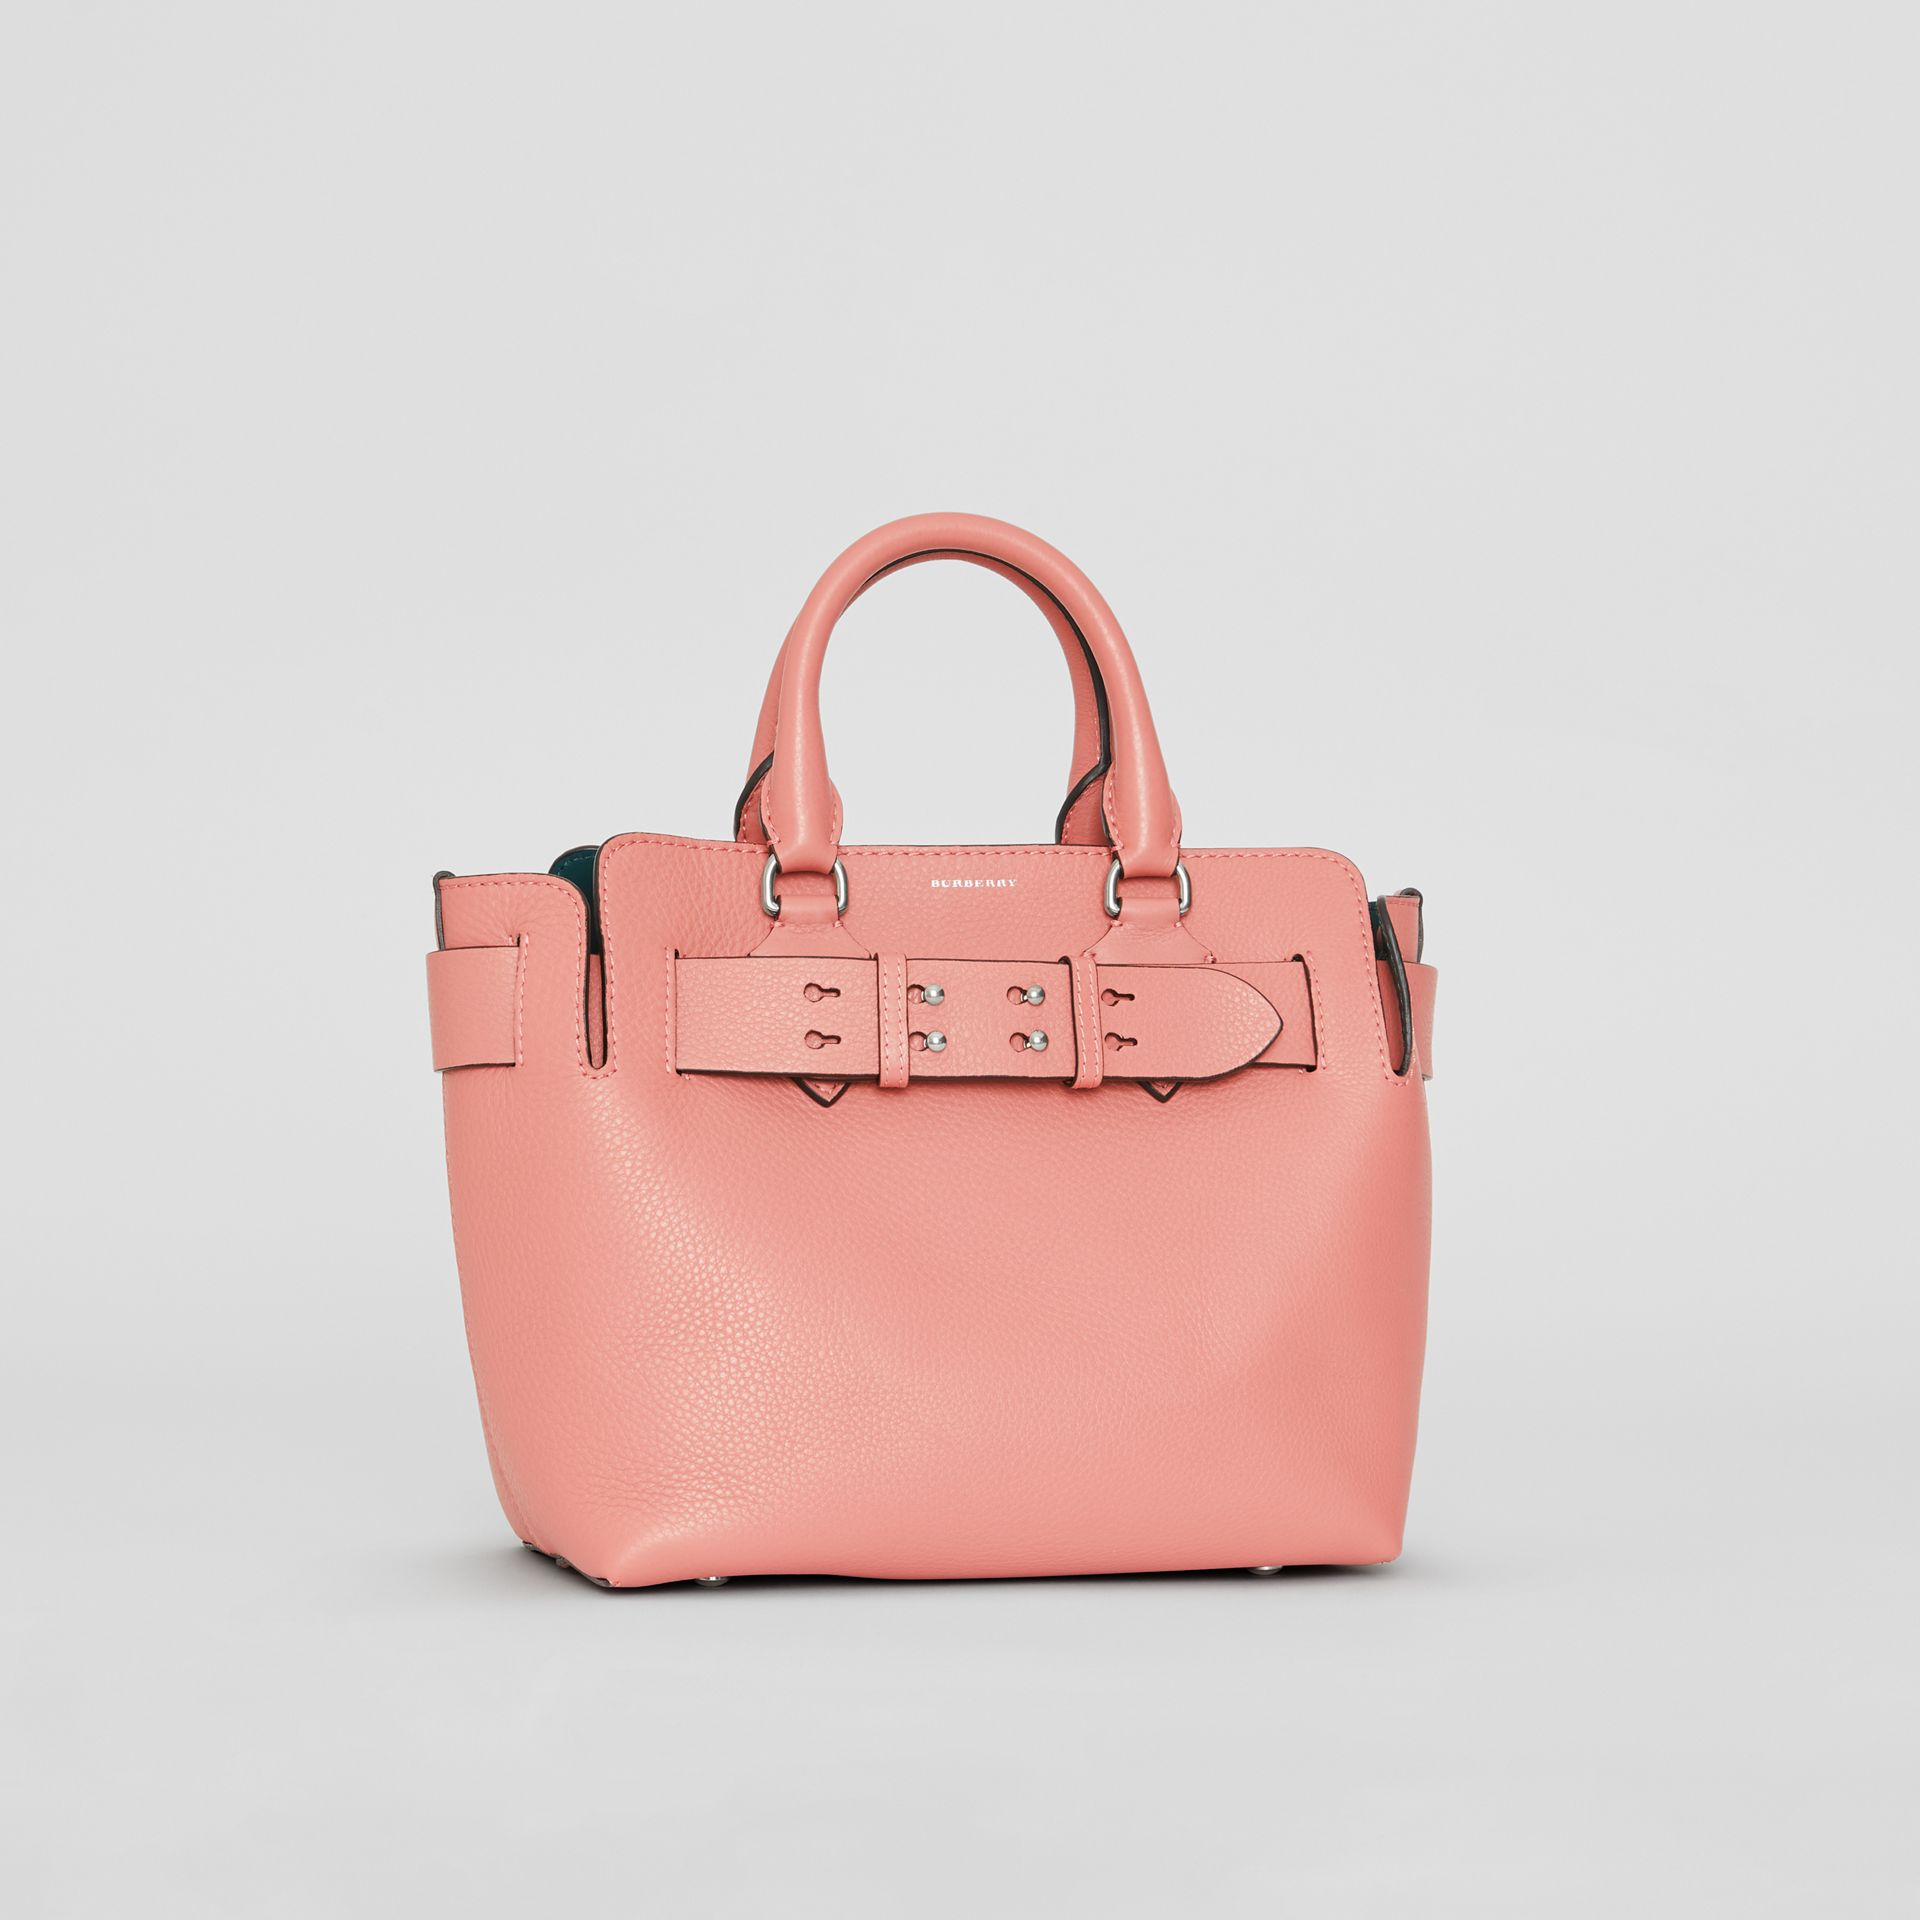 Petit sac The Belt en cuir (Rose Cendré) - Femme | Burberry Canada - photo de la galerie 6